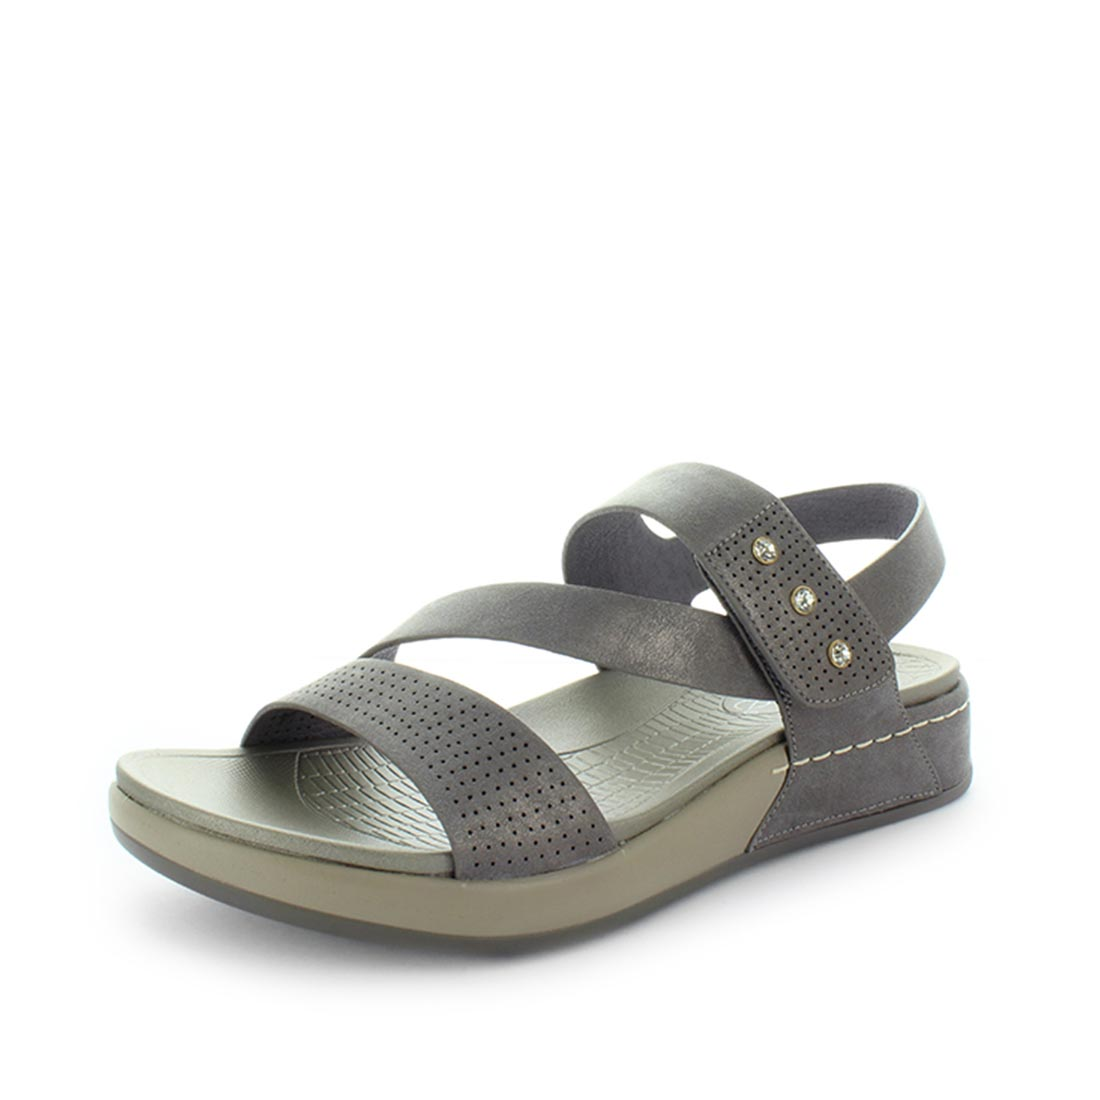 womens sandals, womens synthetic sandals, ladies slip-on sandals, wilde shoes, womens pu thongs